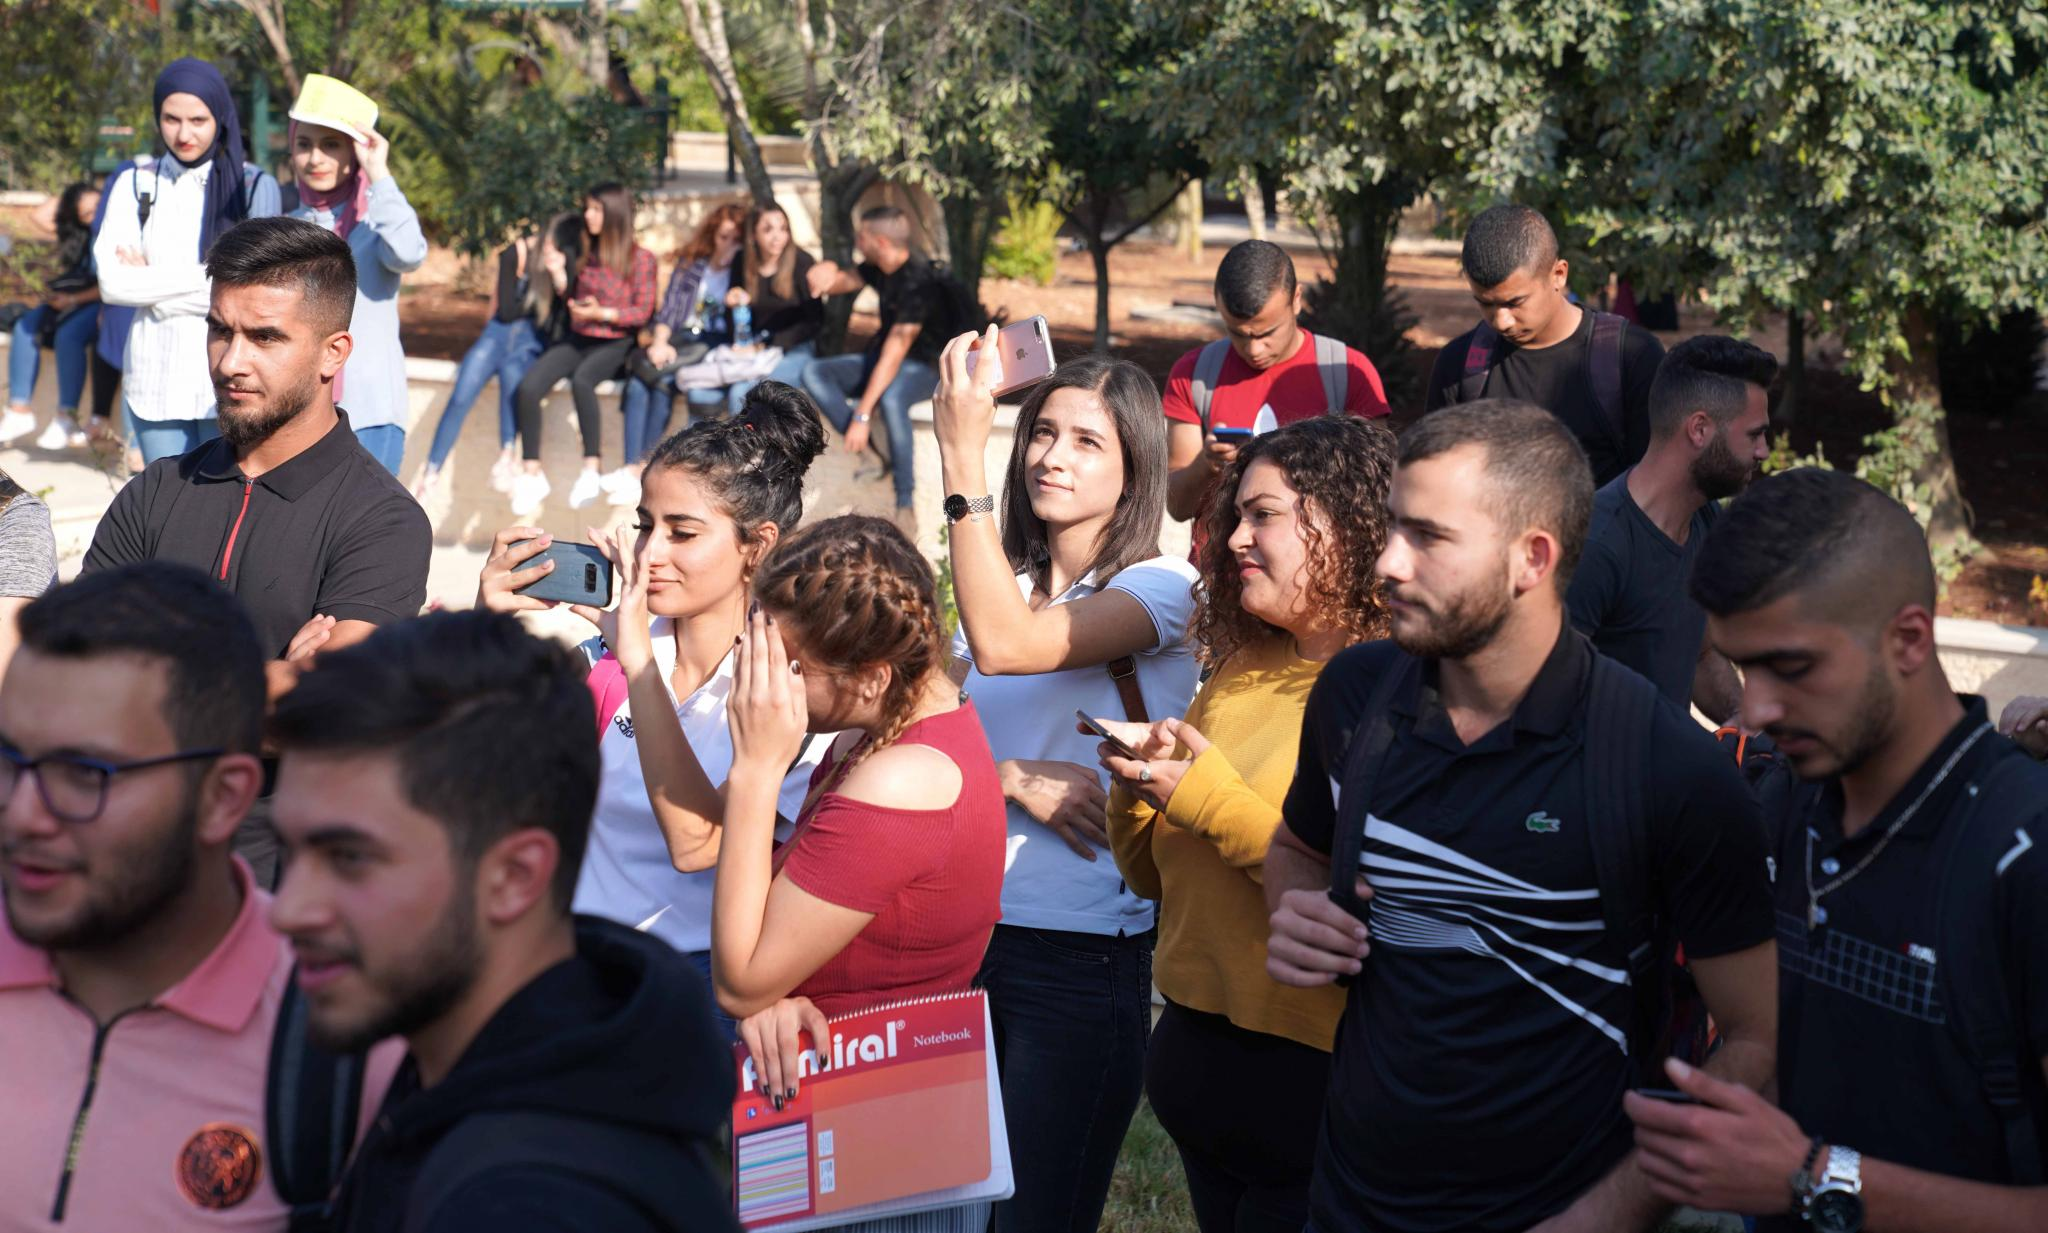 AAUP Organize an Entertainment Day for Its Students